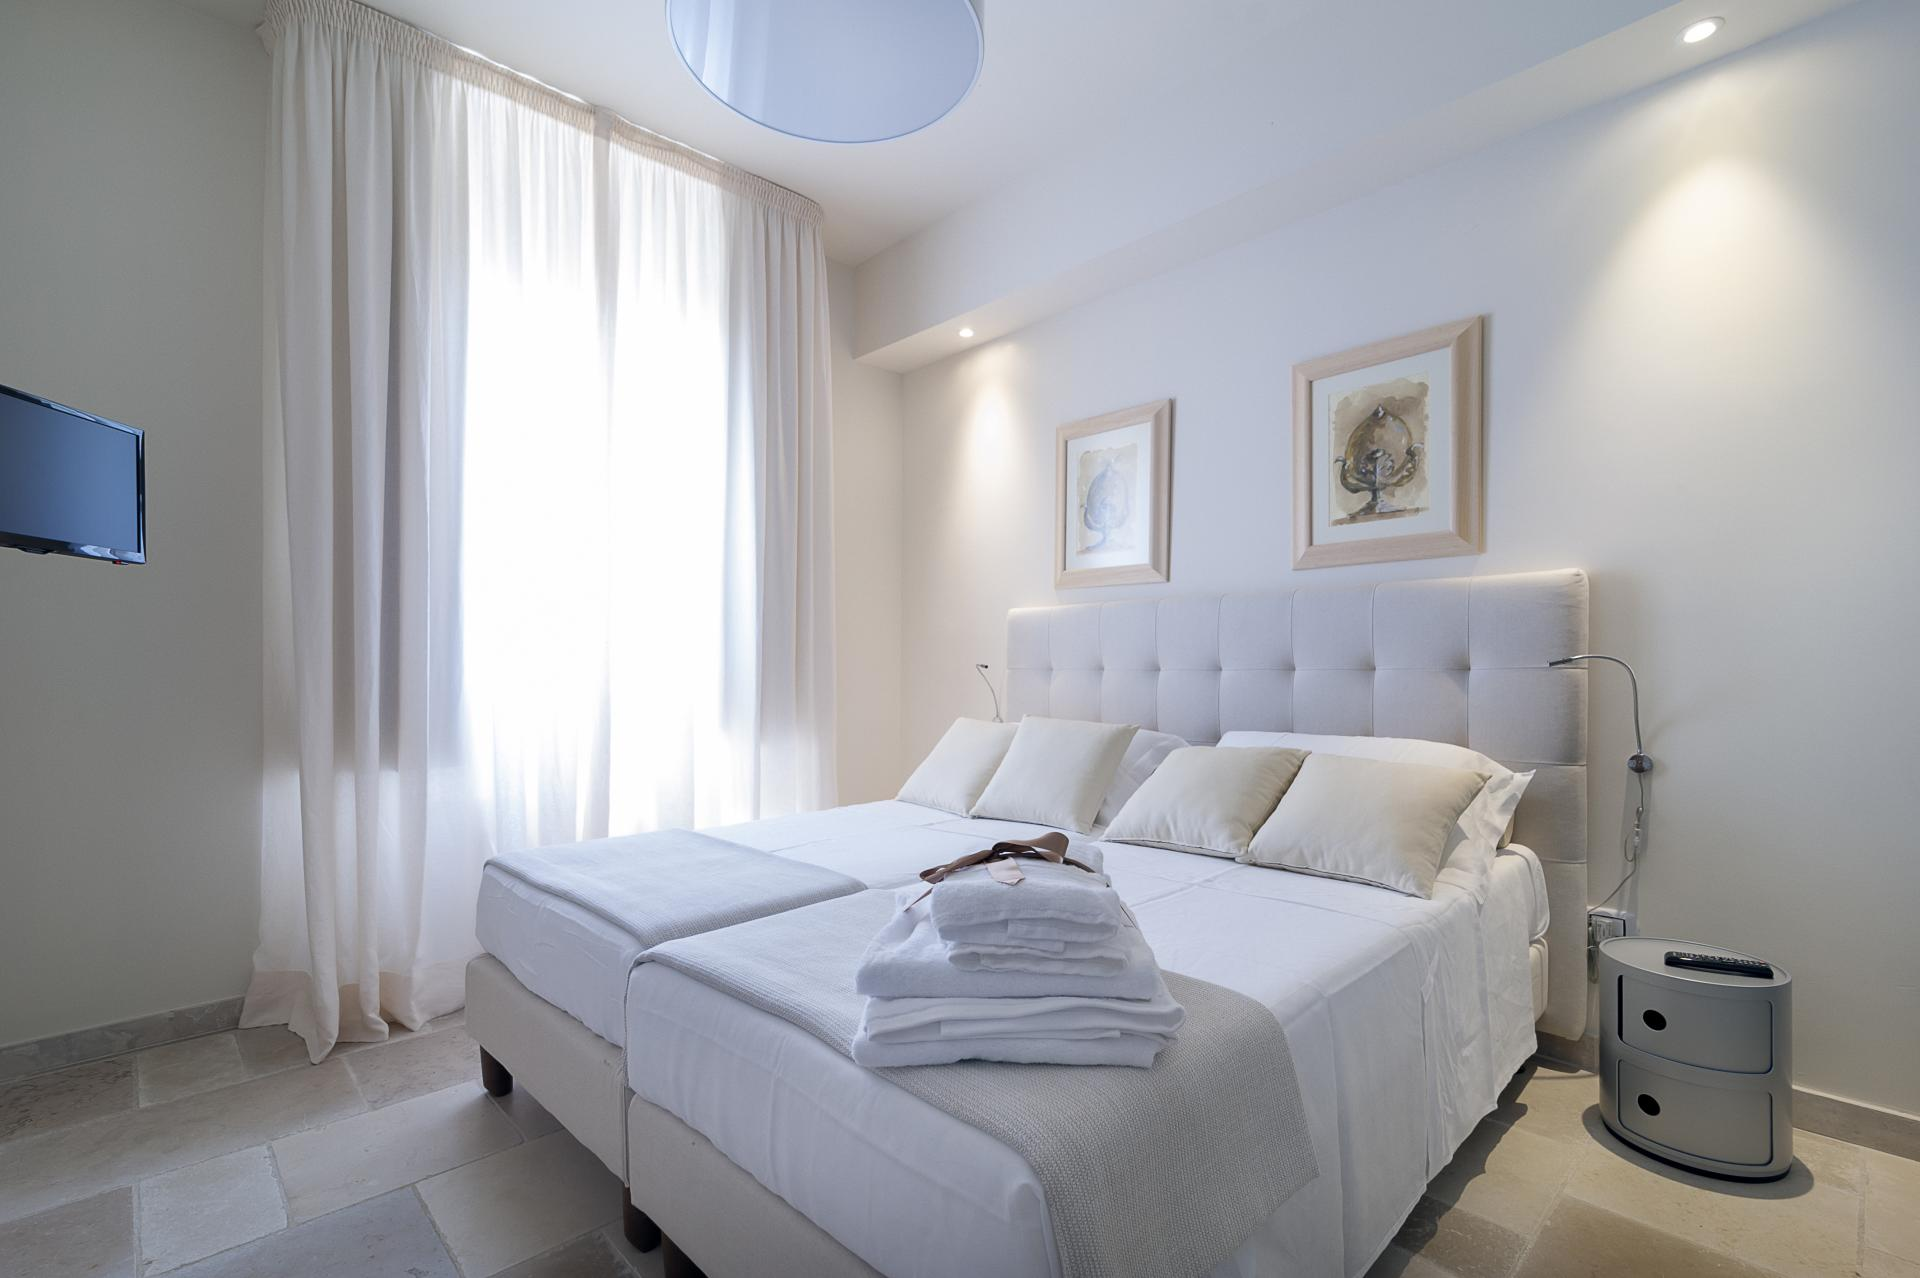 Bedroom 1, Idomenea, Gallipoli, Puglia.